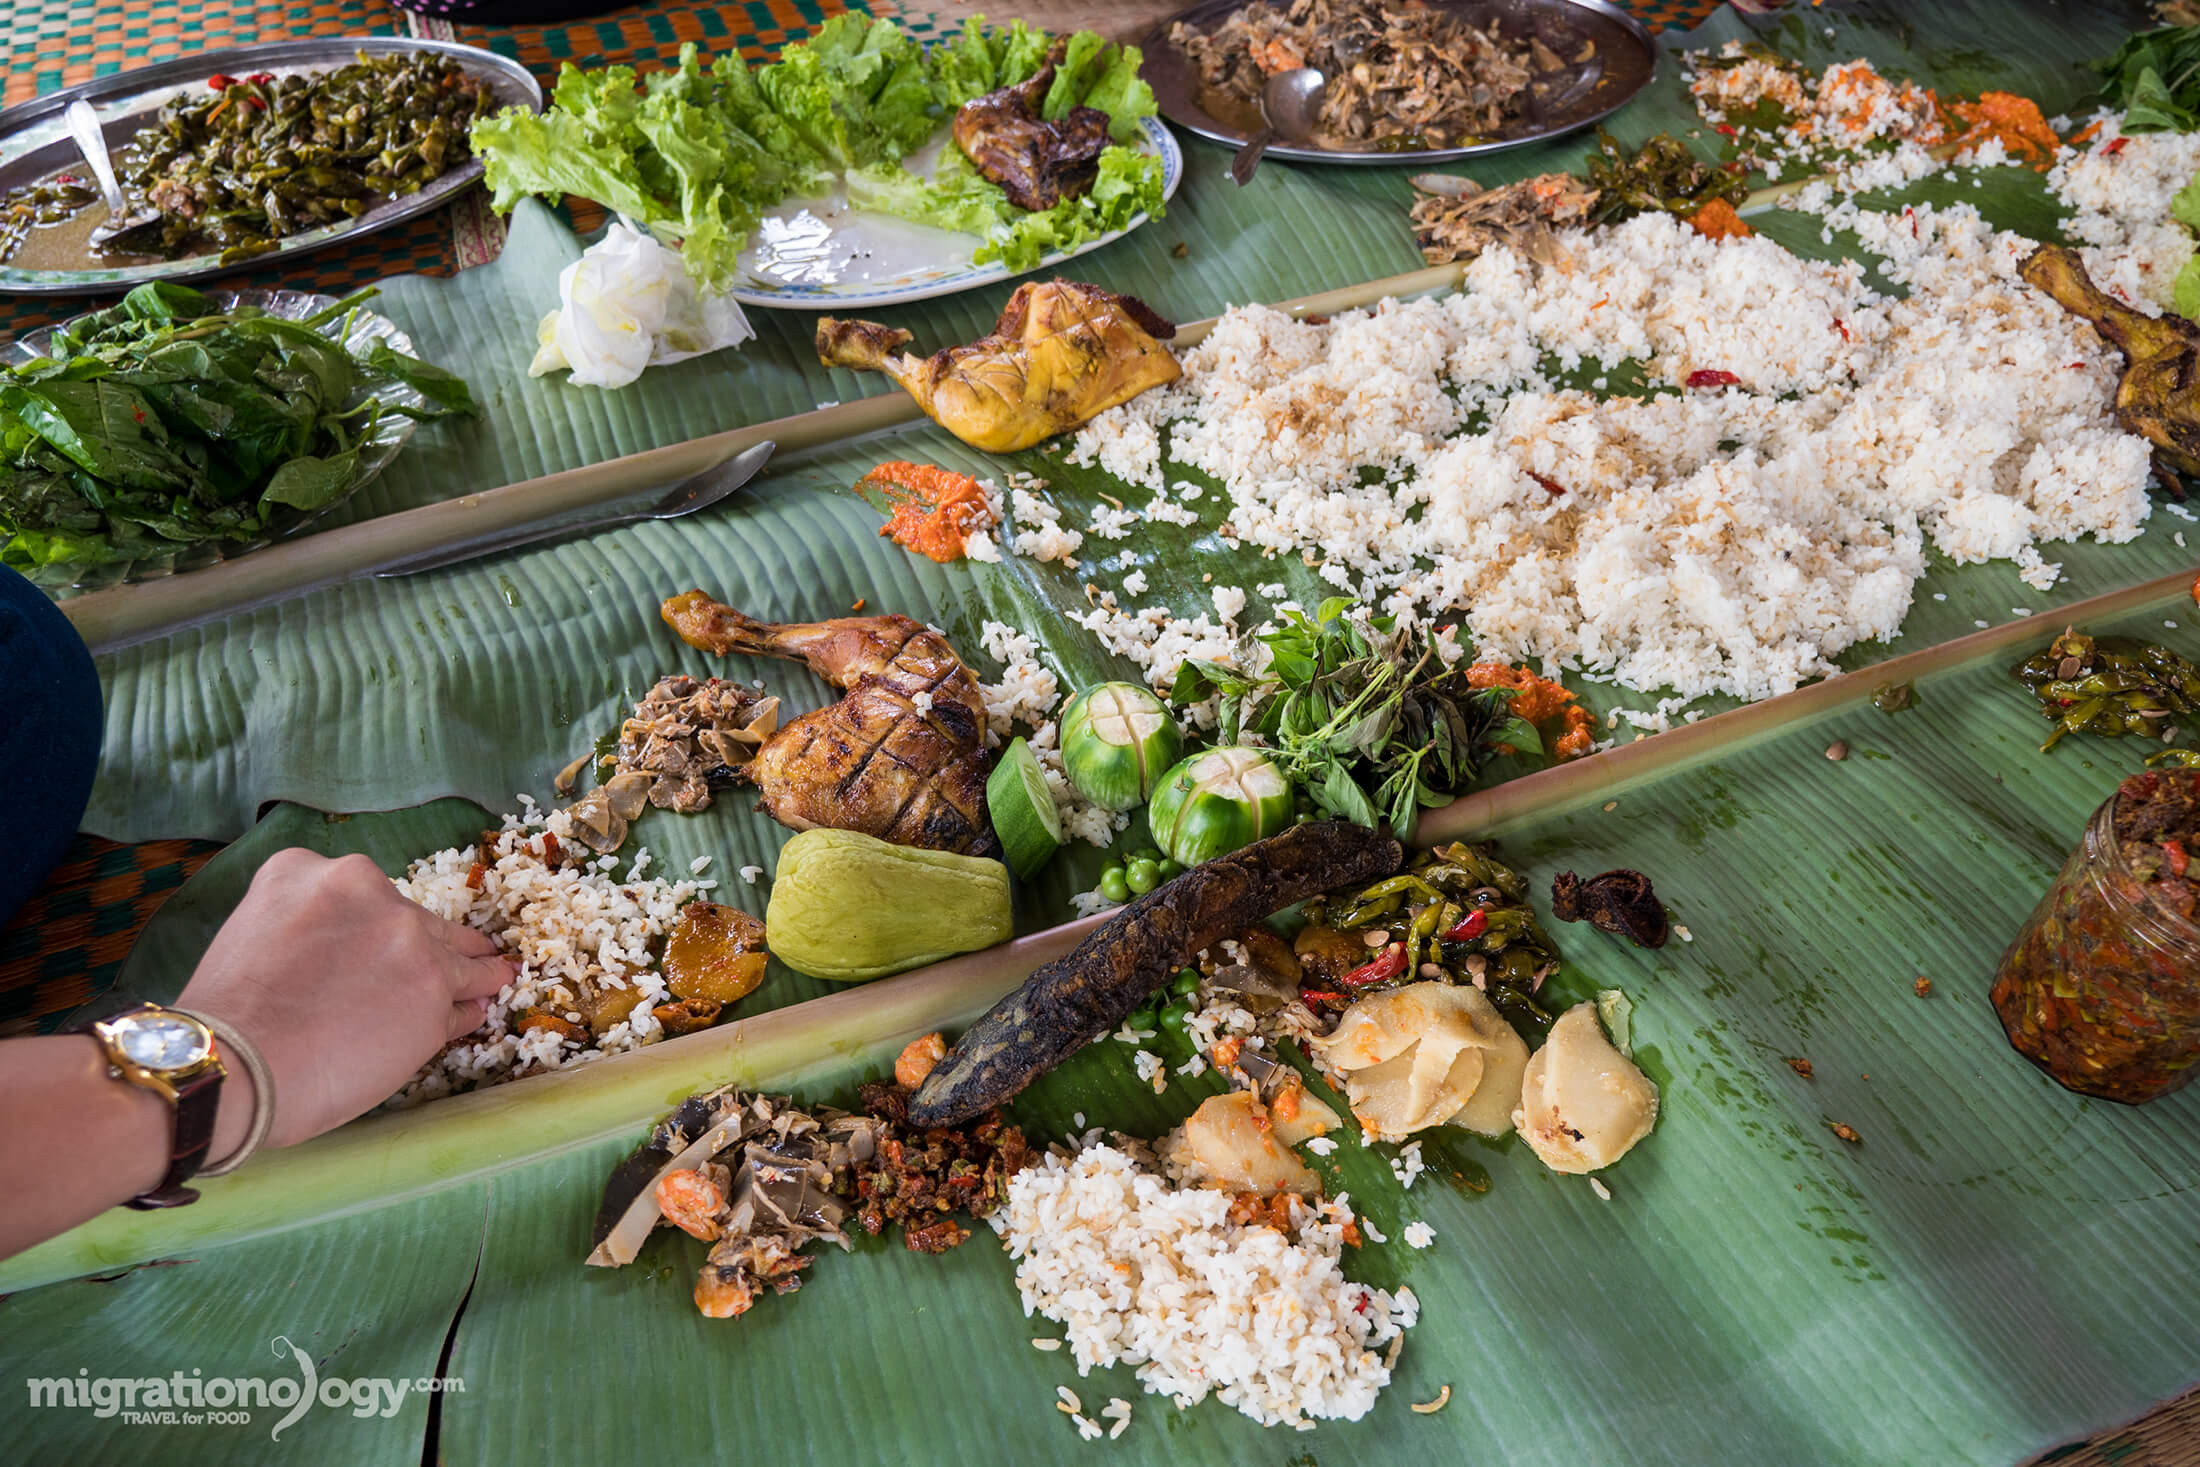 Indonesian Food Of The Best Dishes You Should Eat - 25 incredible photographs will make want go indonesia